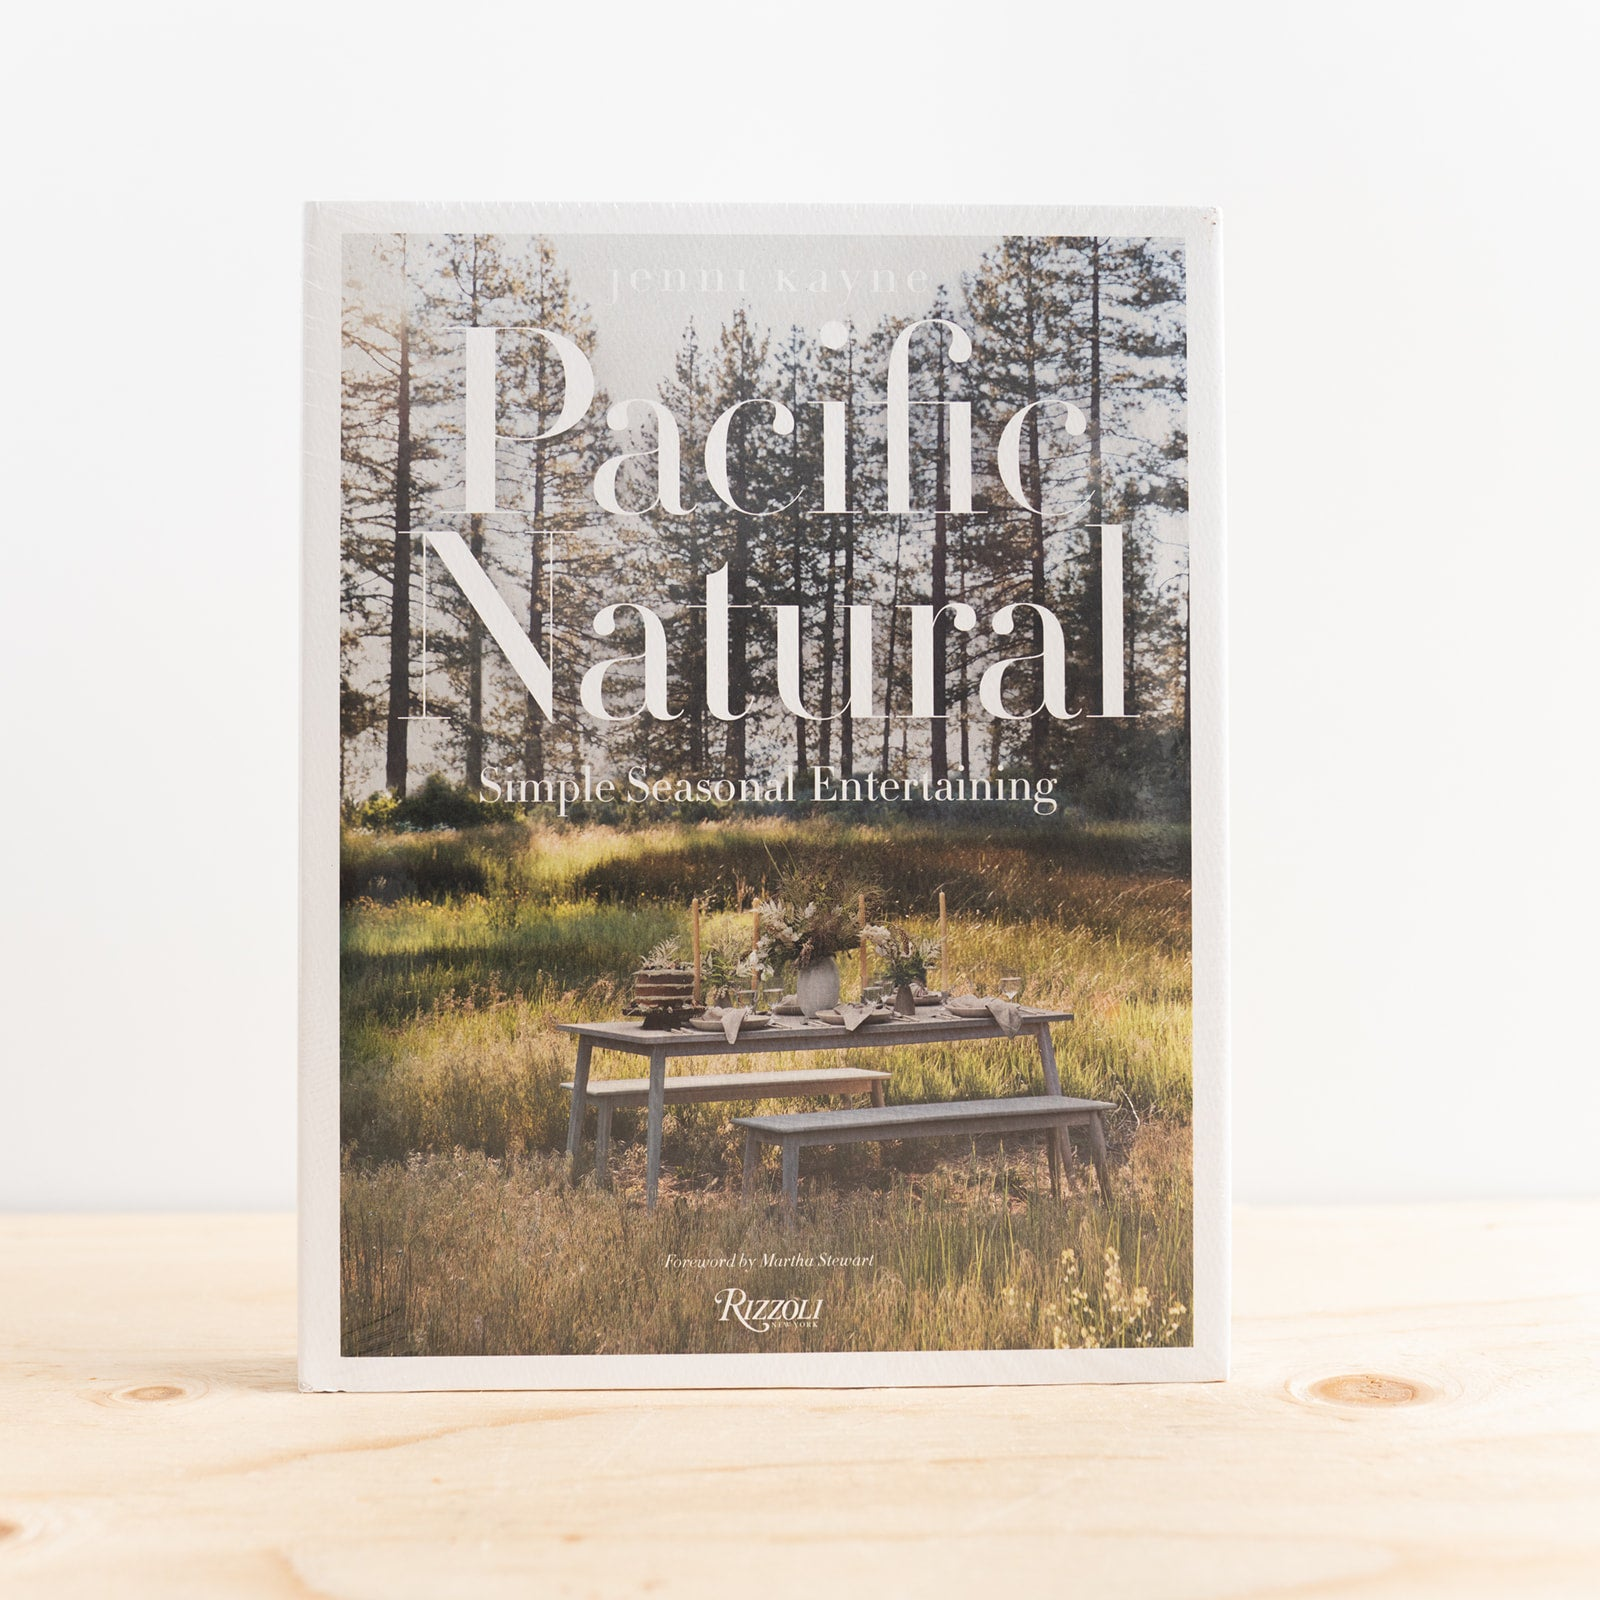 """Pacific Natural: Simple Seasonal Entertaining"" by Jenni Kayne"